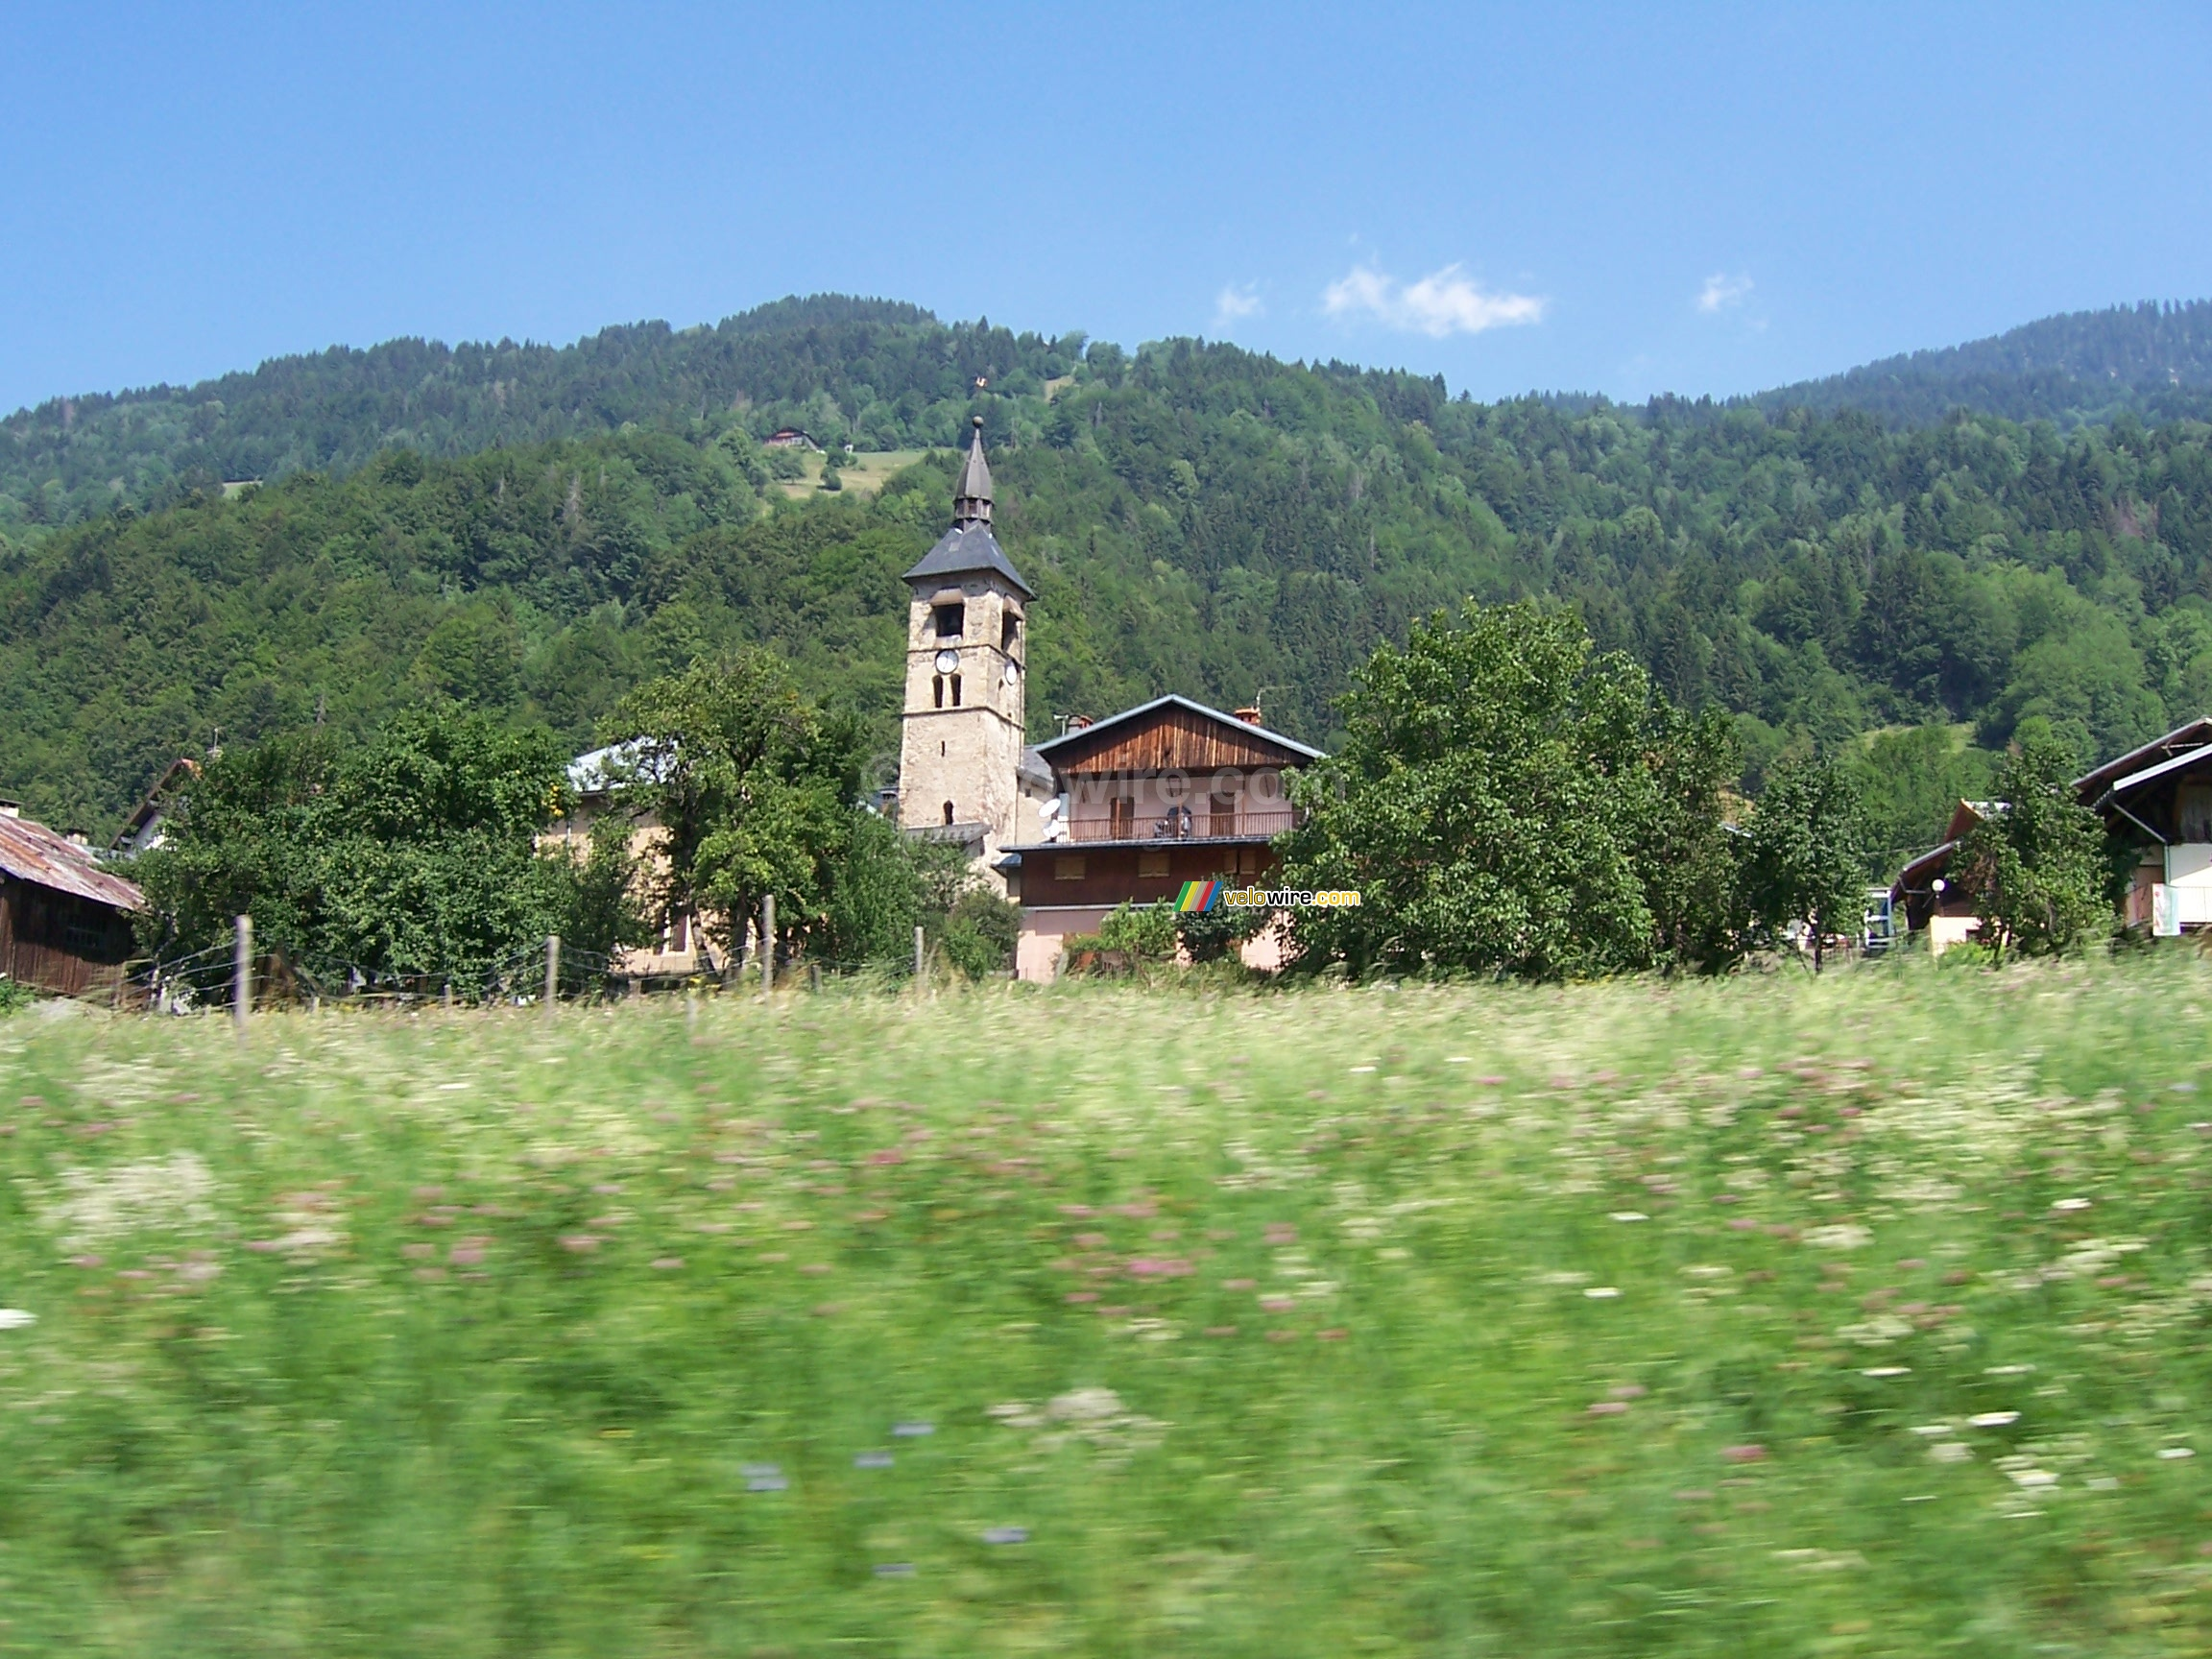 A nice church and a nice view on our way - [1 day in the La Vache Qui Rit